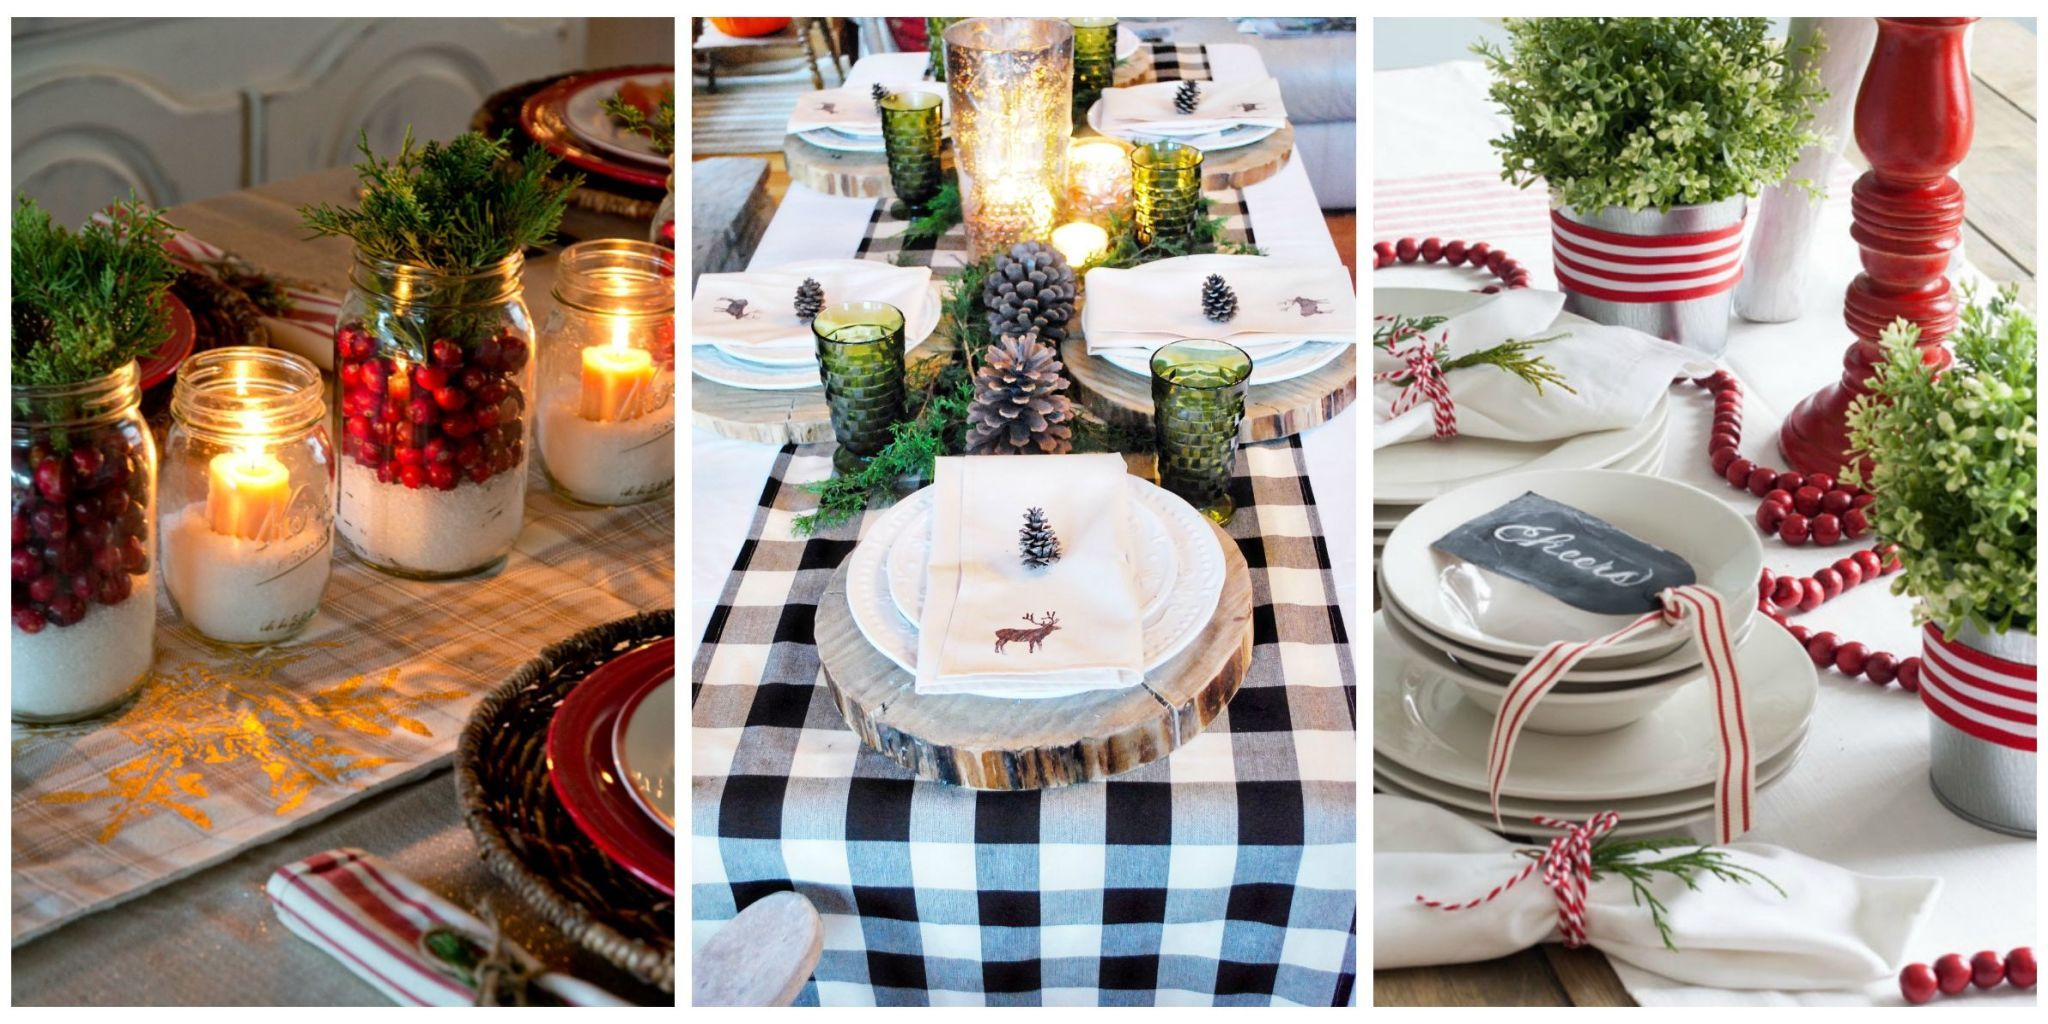 Spruce up your Christmas table with these creative and festive decorations. & 32 Christmas Table Decorations u0026 Centerpieces - Ideas for Holiday ...